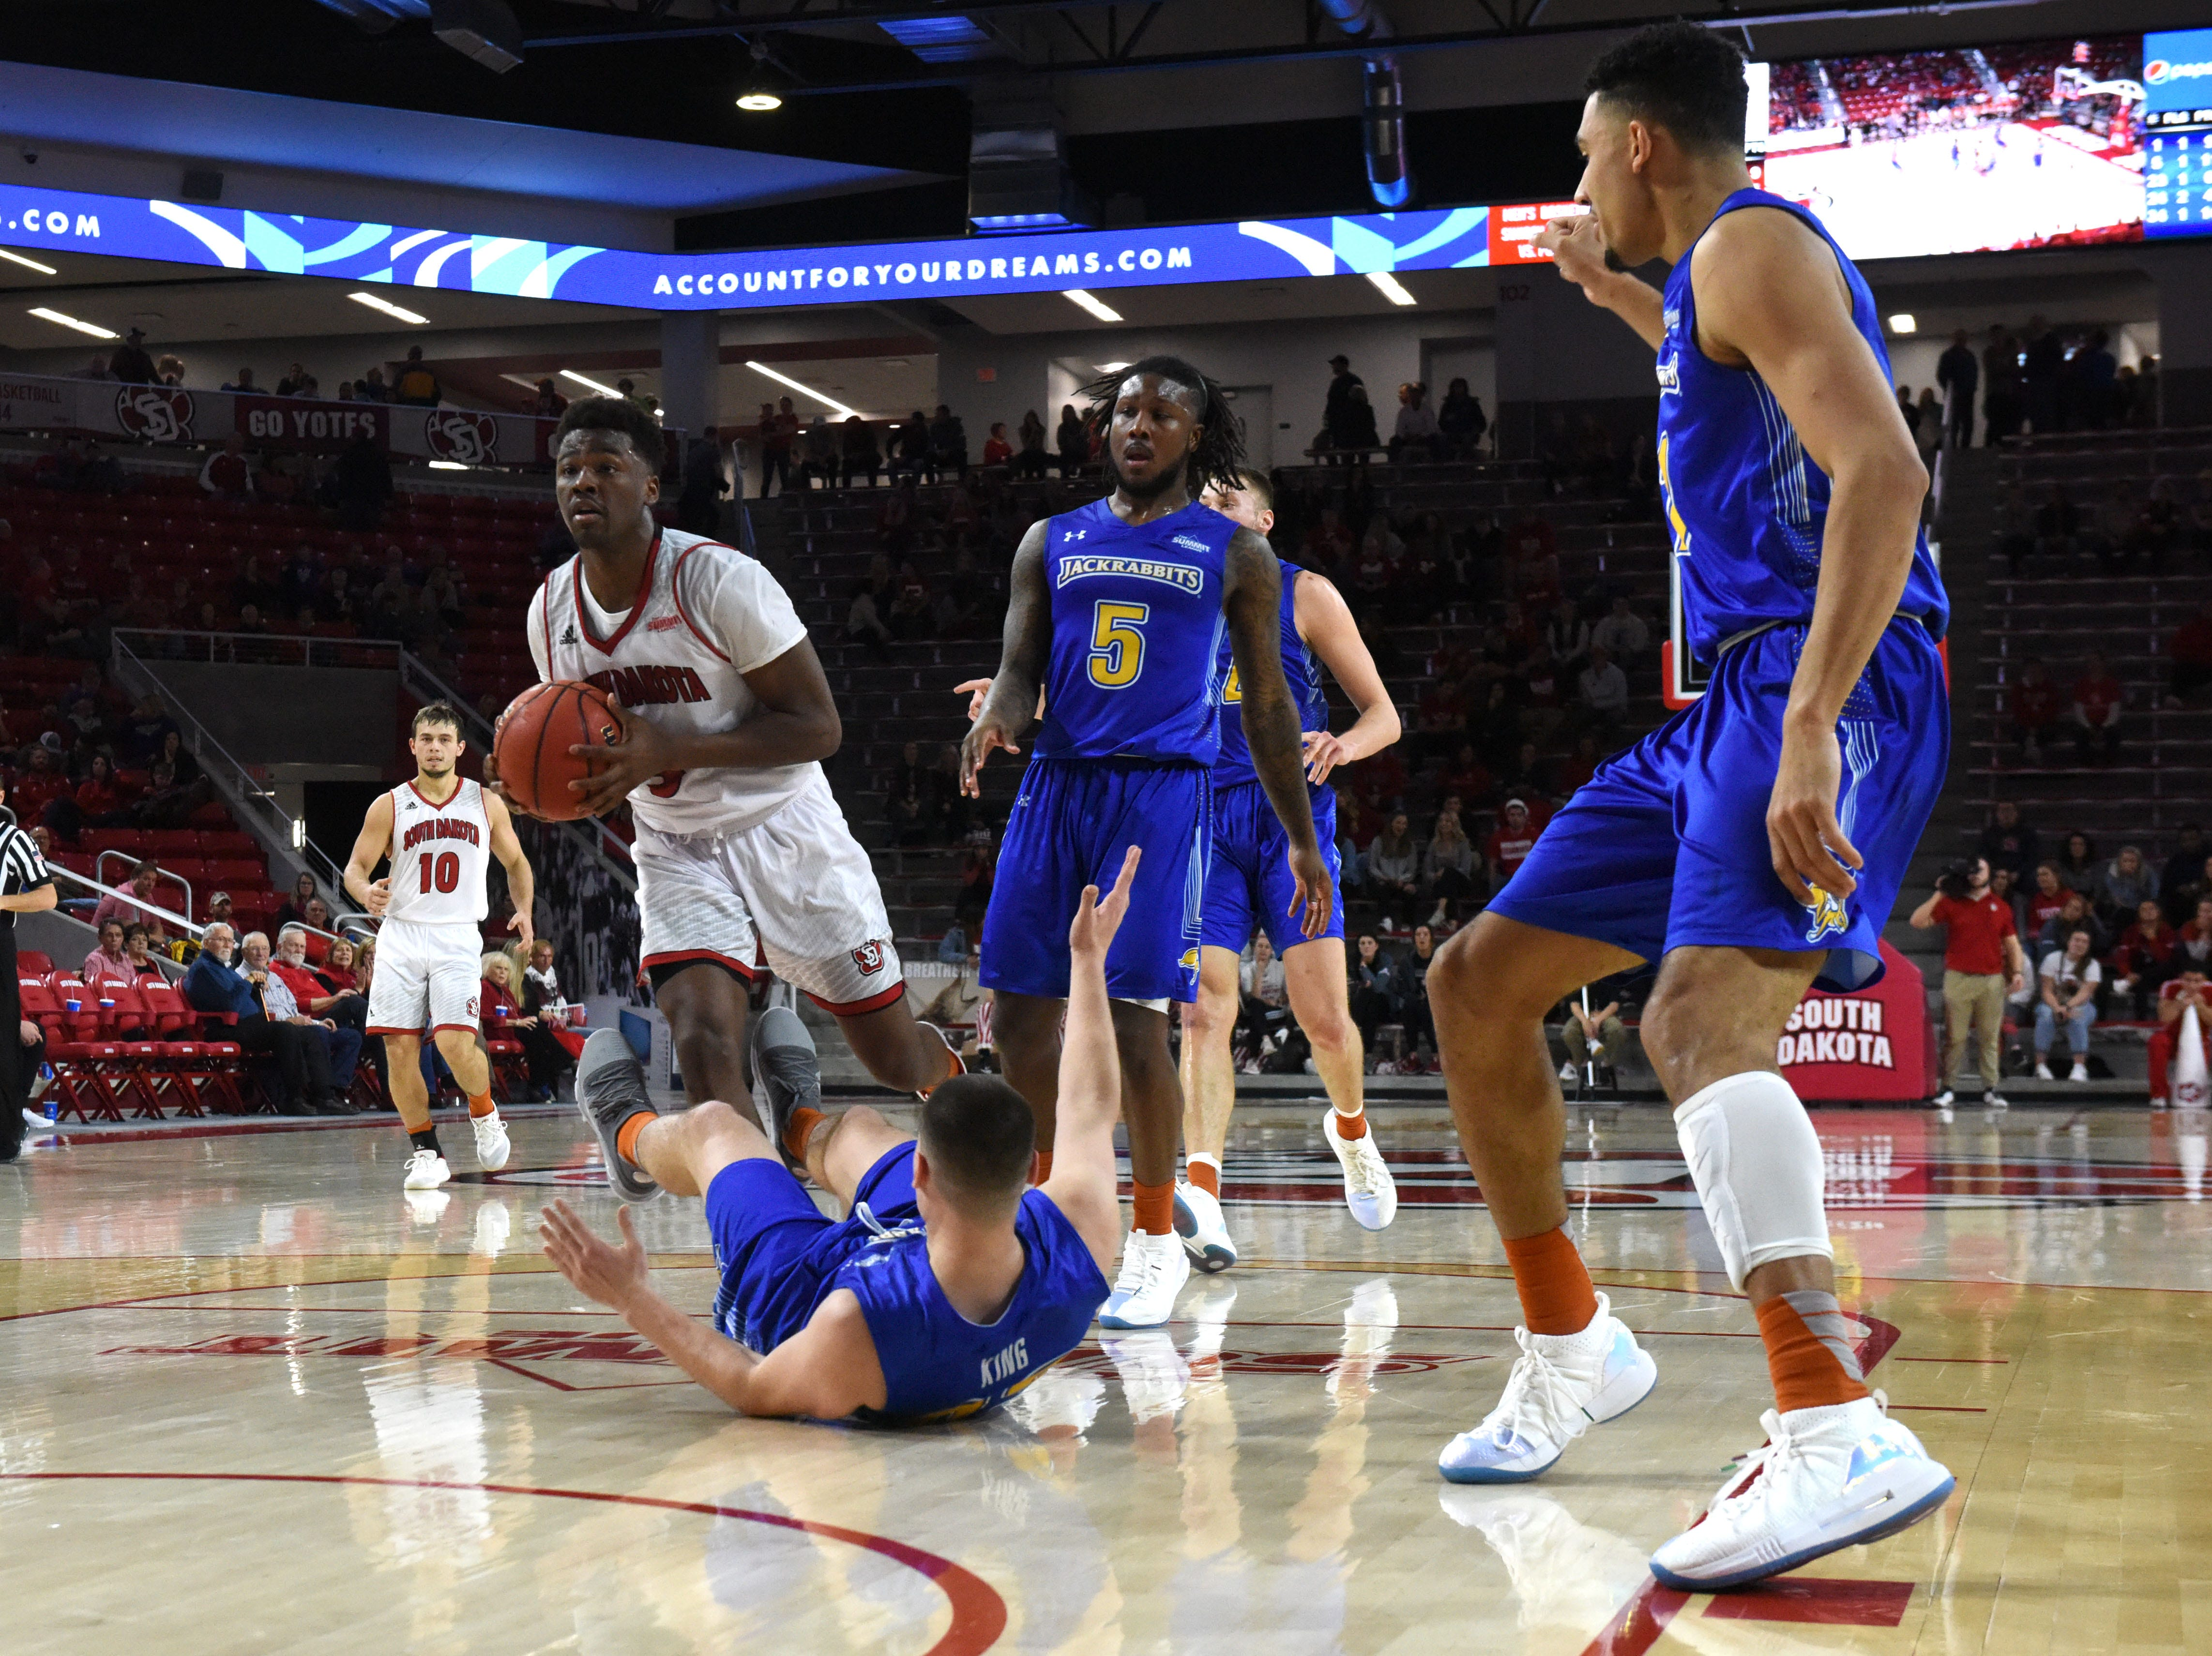 USD's Triston Simpson (3) dribbles the ball through SDSU player during a game, Sunday, Jan. 6, 2019 in Vermillion, S.D.